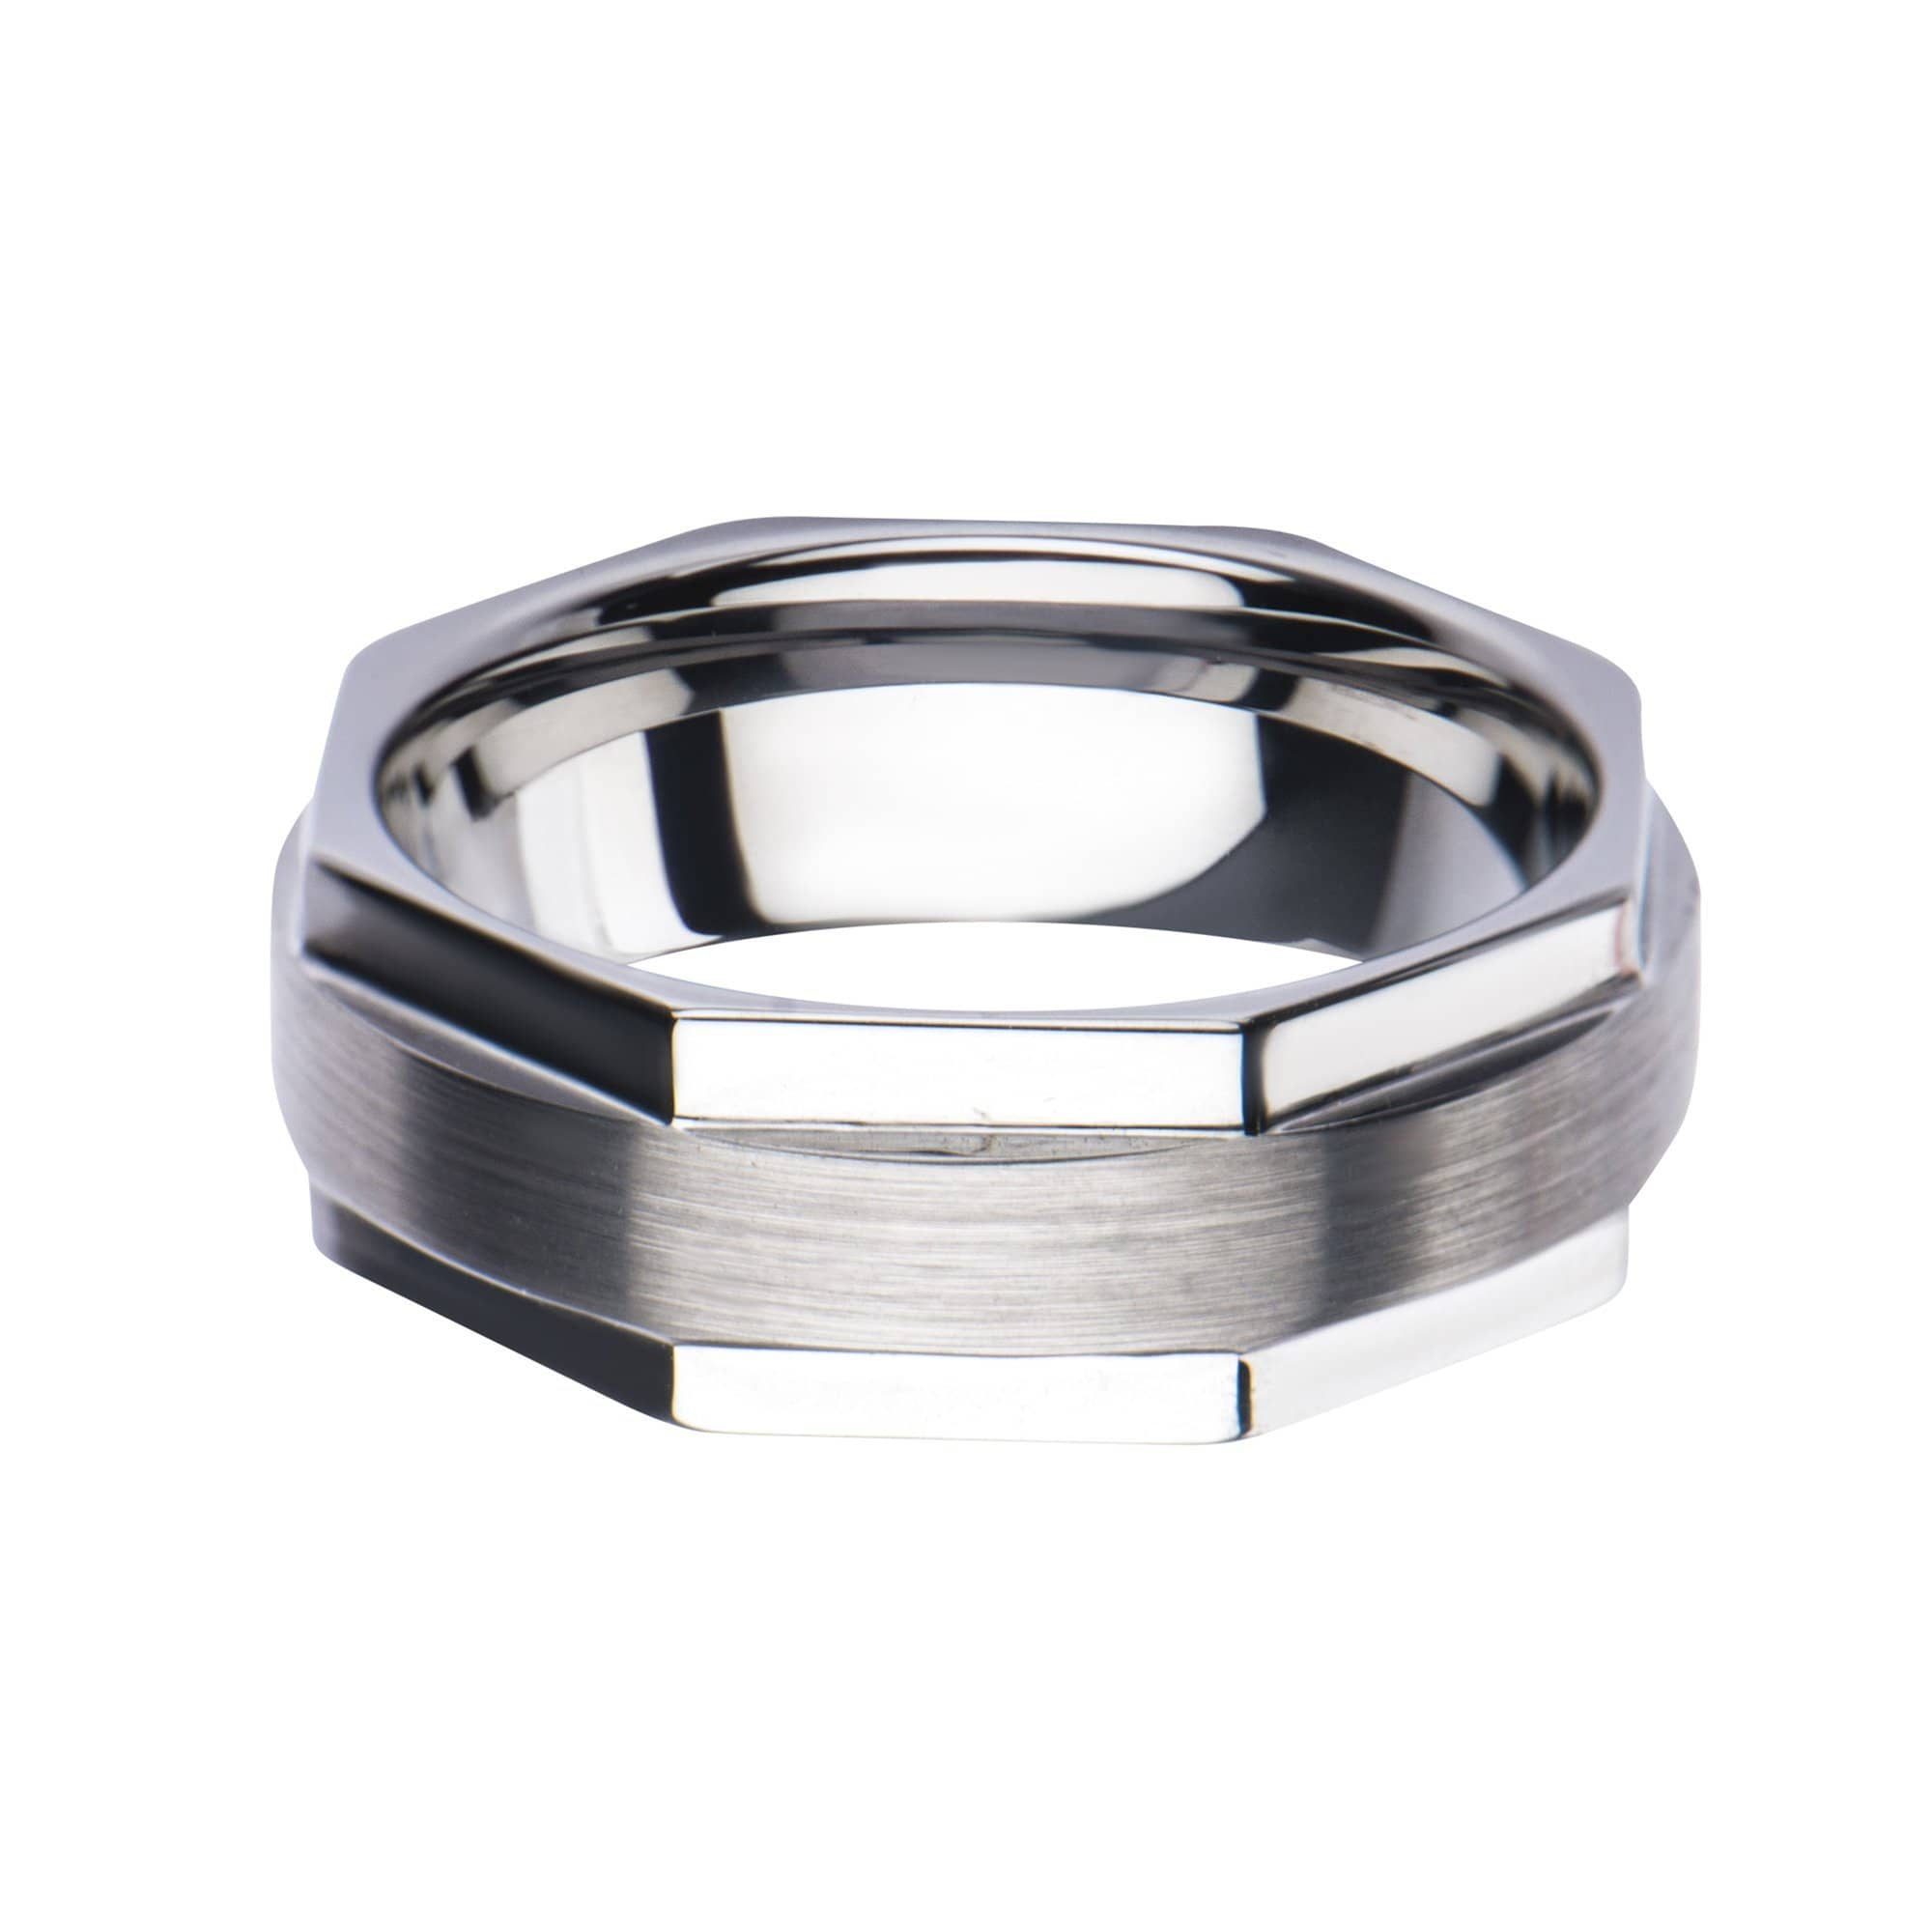 Silver Stainless Steel Octogonal Band Ring